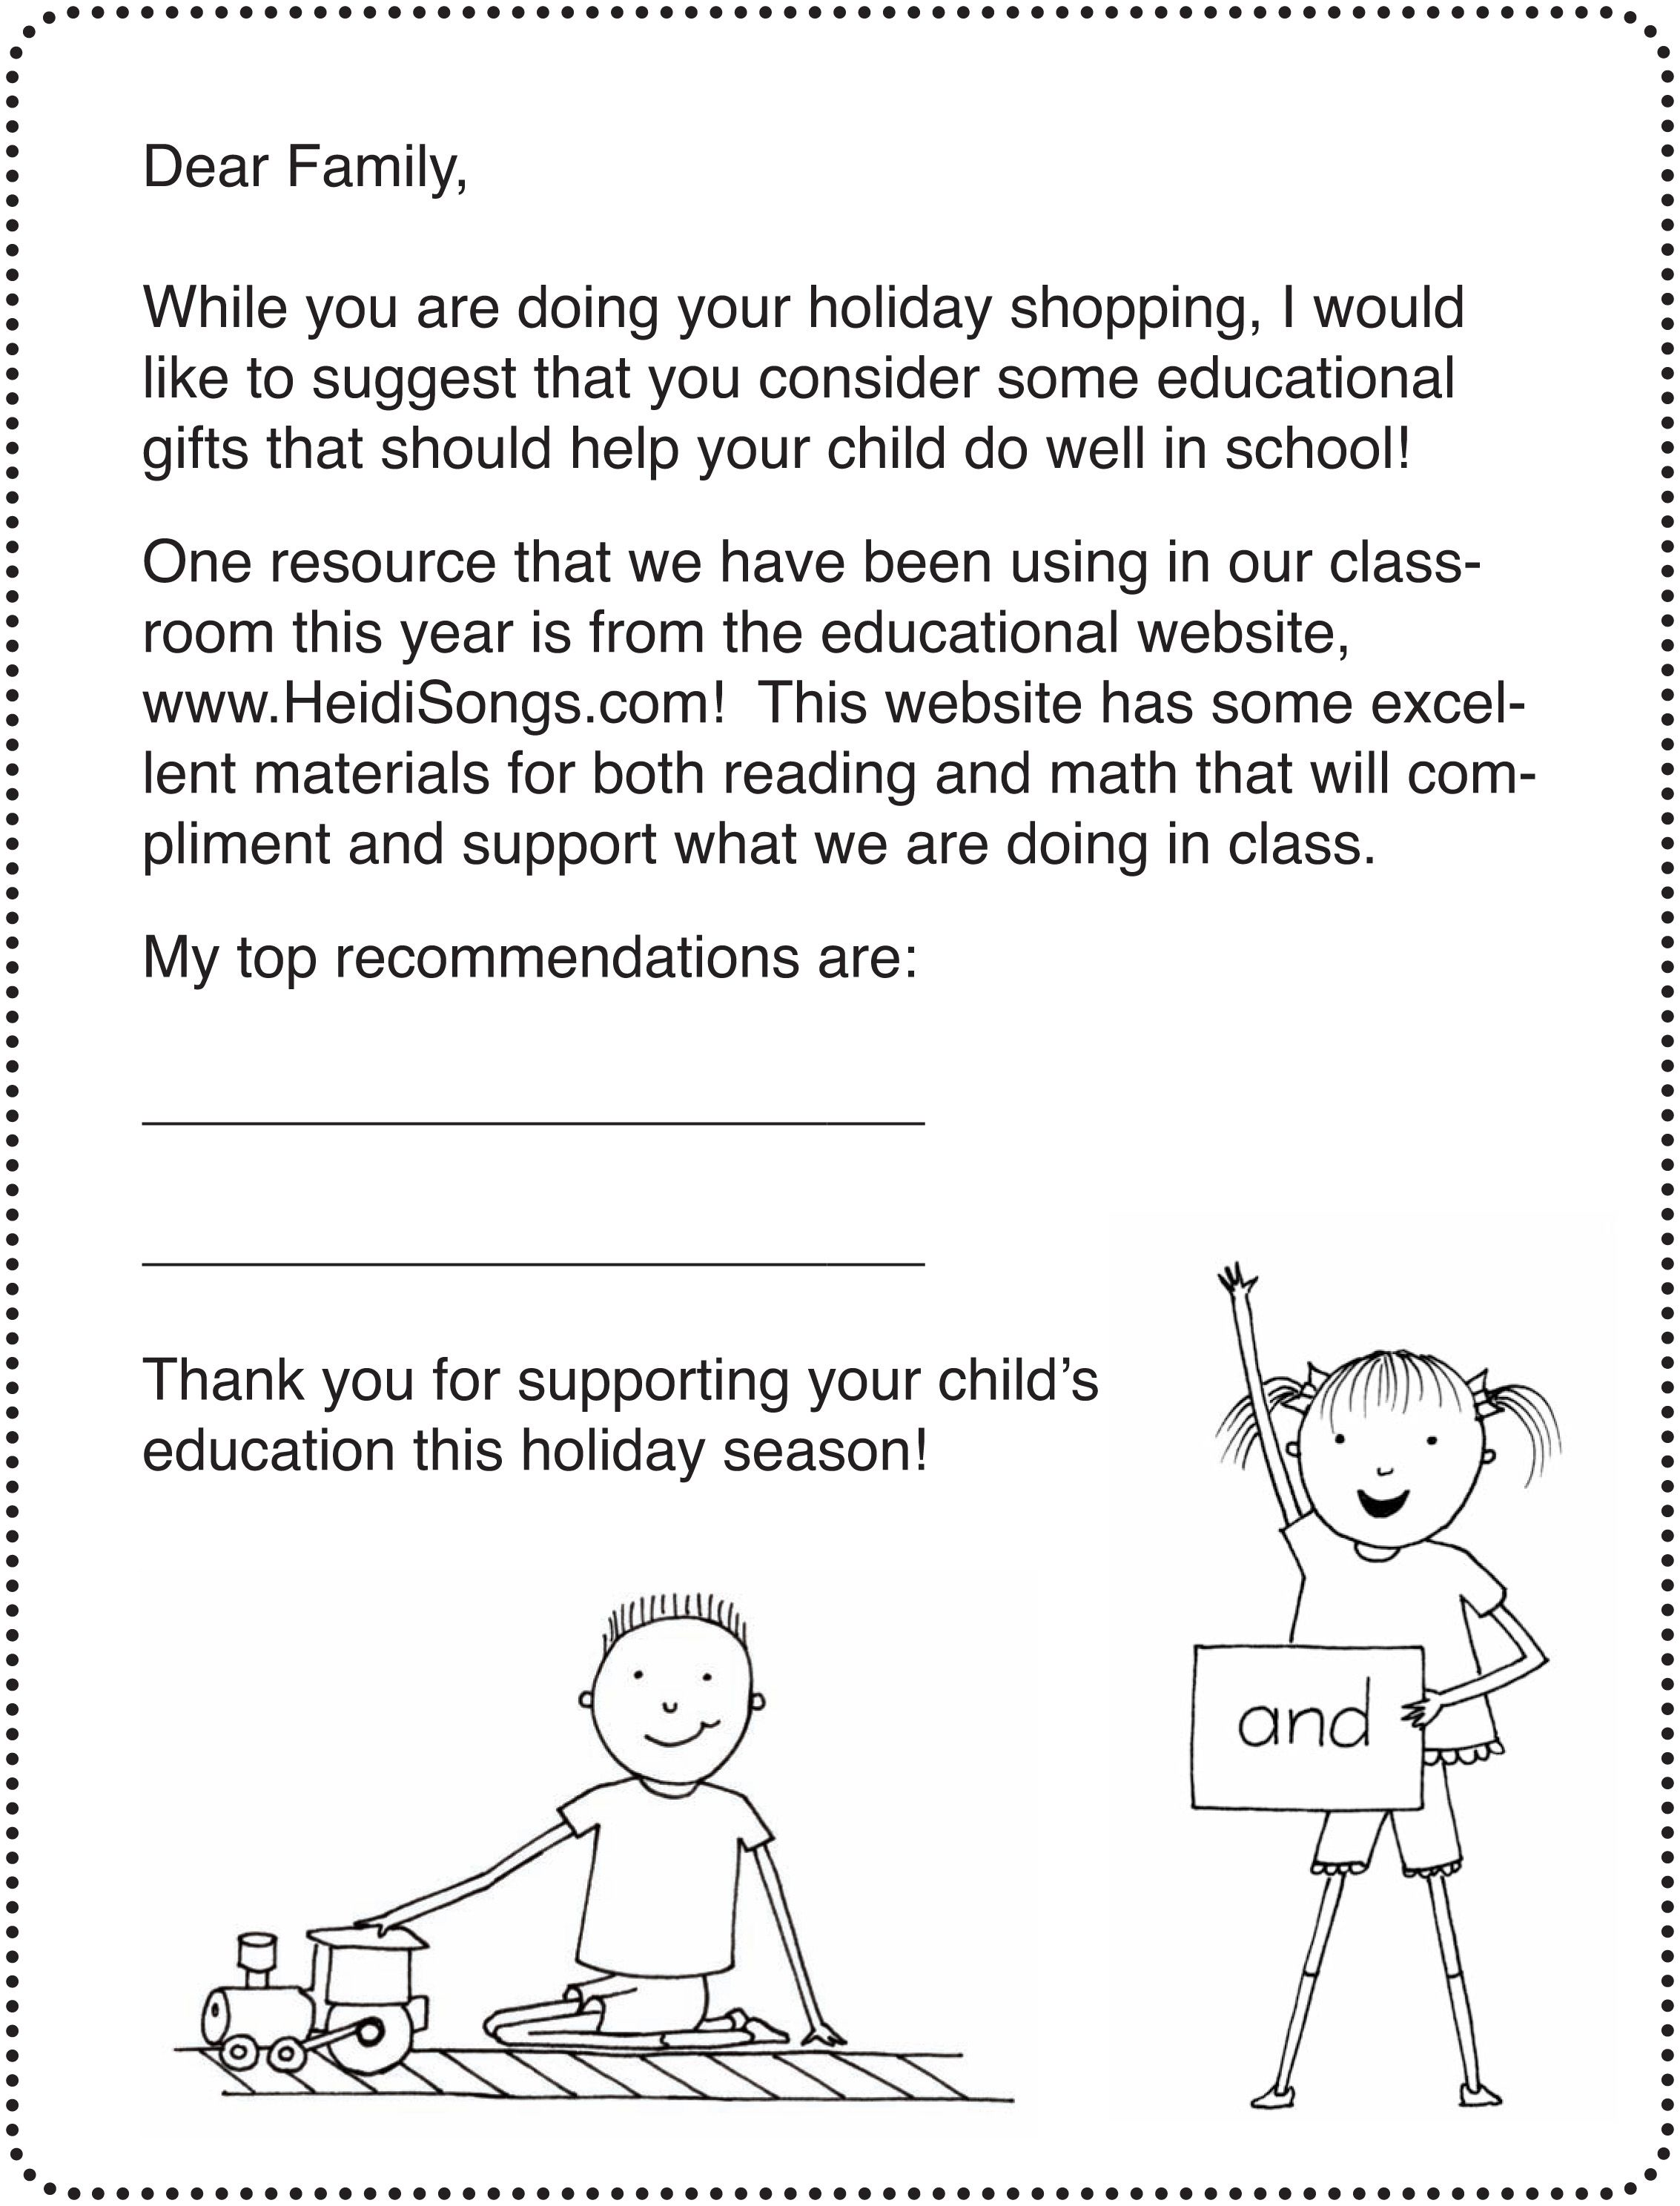 How To Get Parents To Buy Educational Gifts For Kids  Parents And